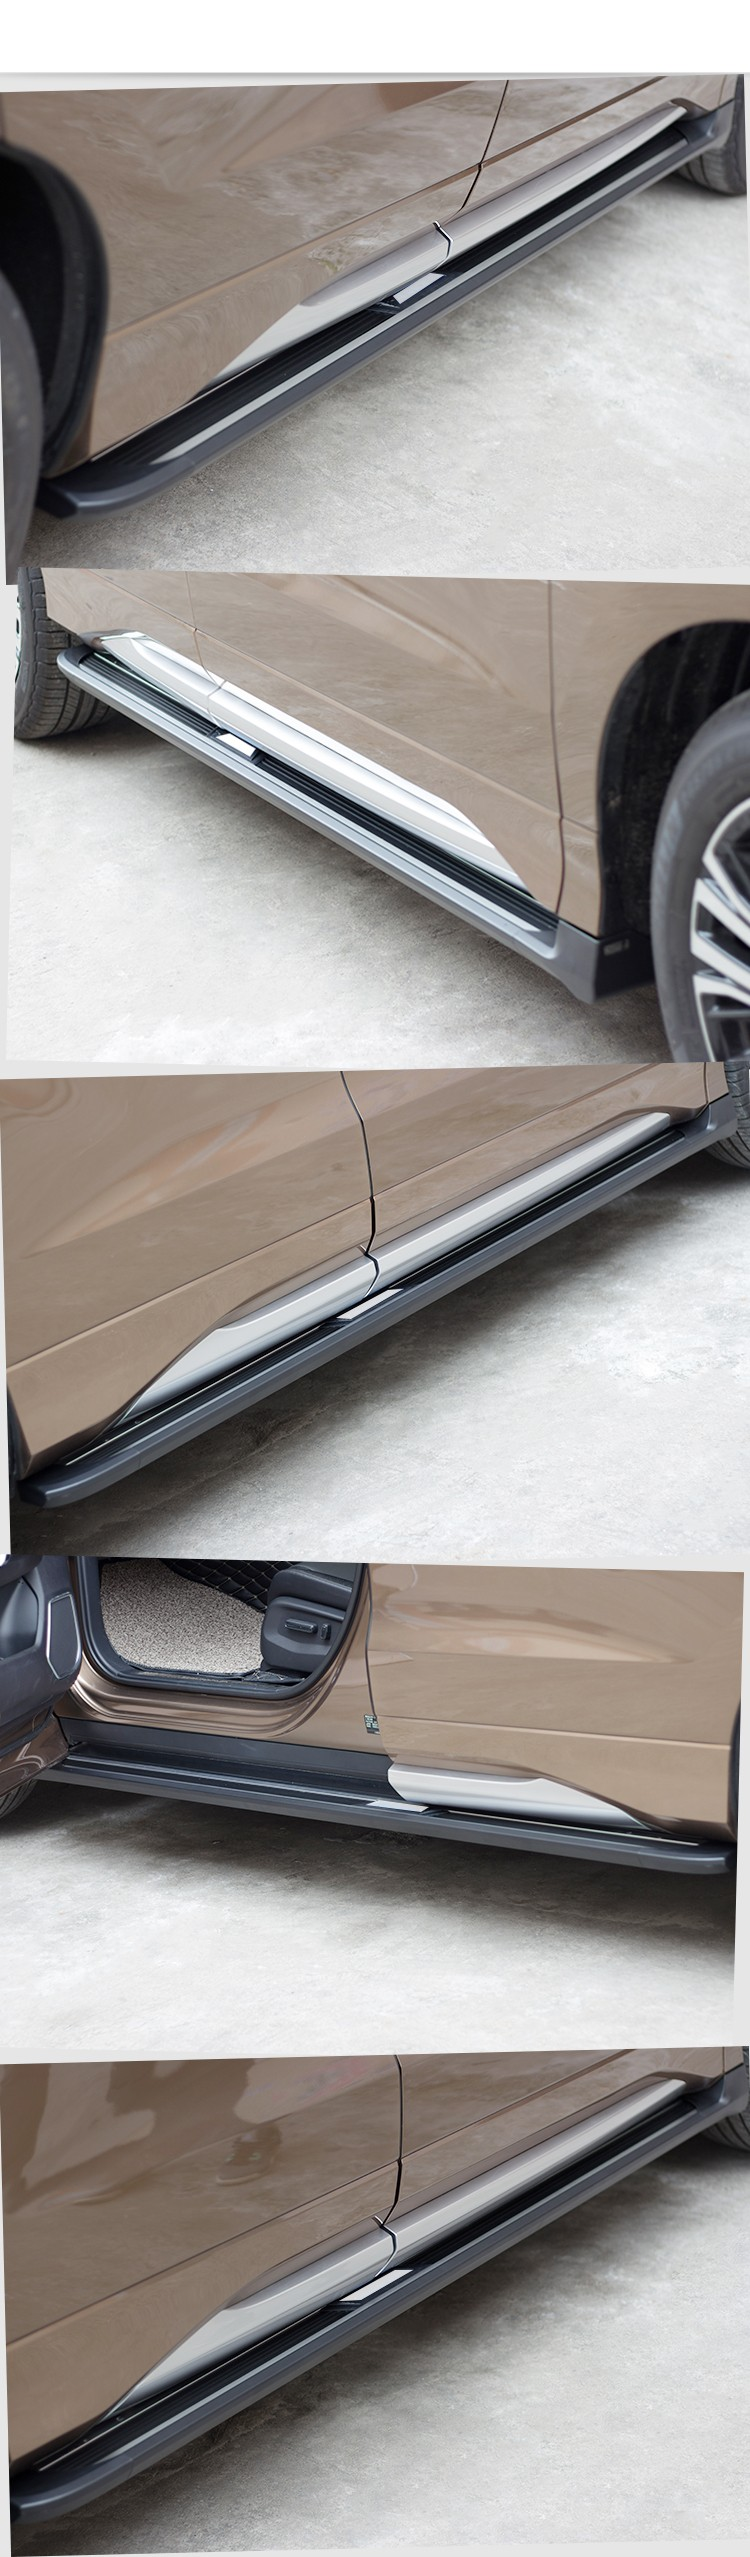 2017 hot sale running board with toyota HIGHLANDER side step